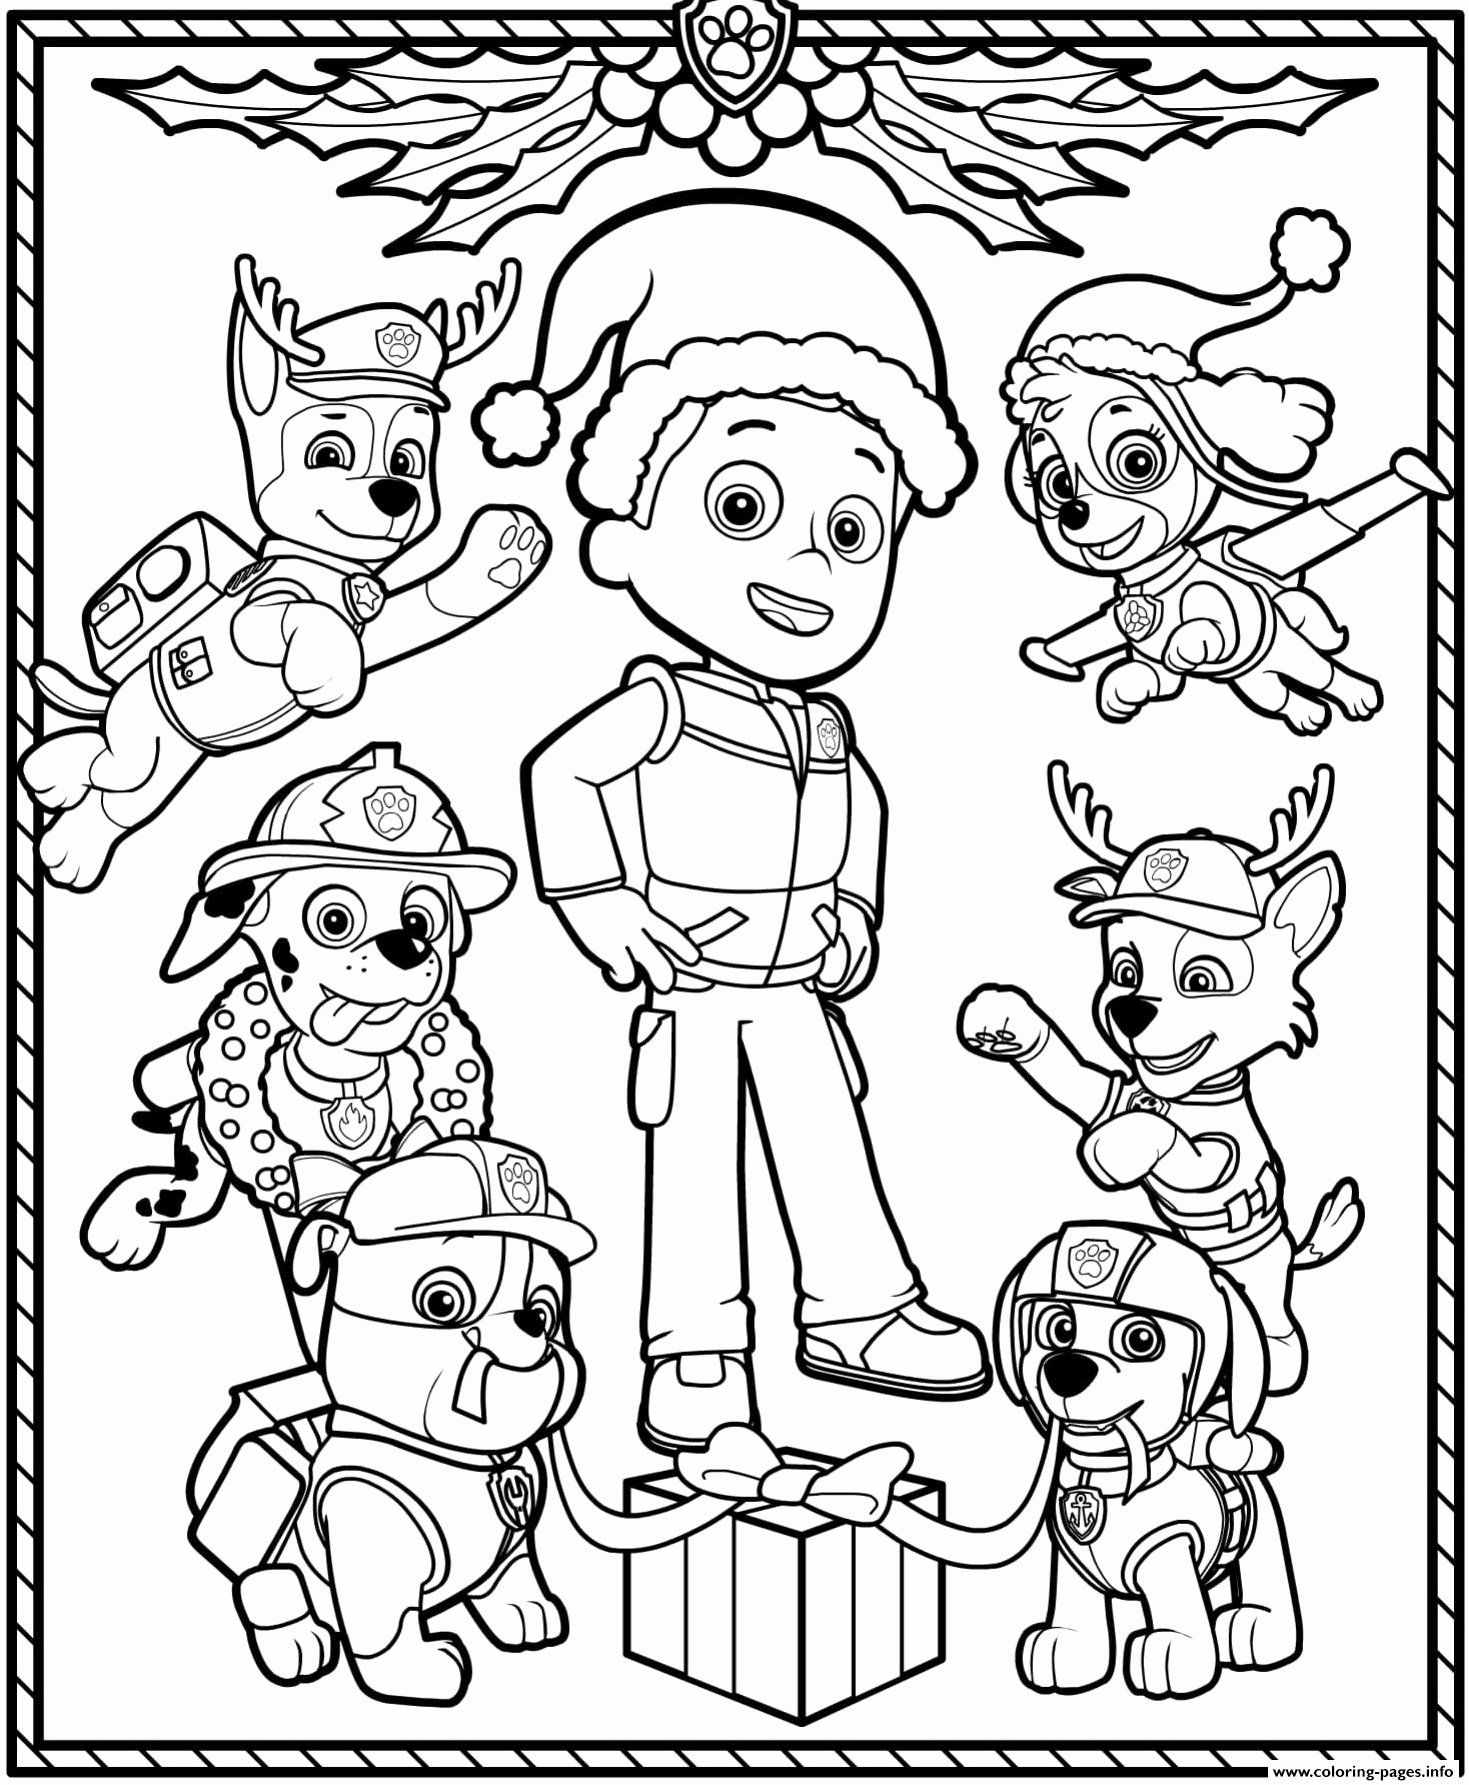 Pin On Coloring Game For Children